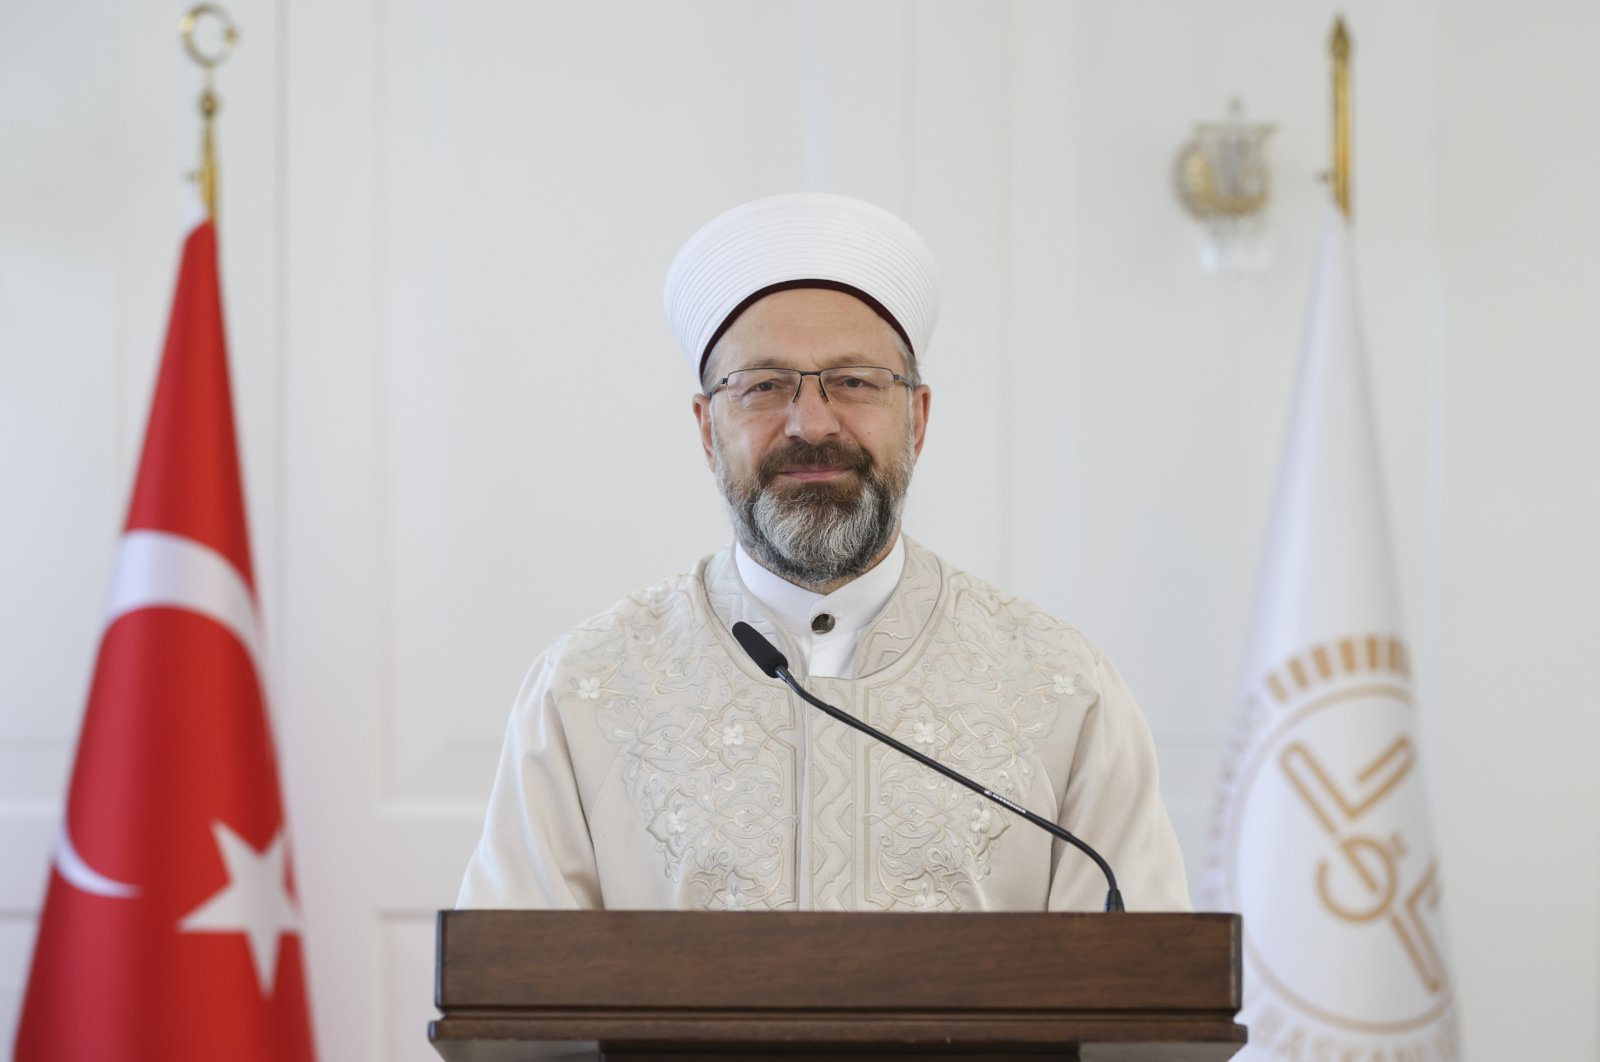 Diyanet President Ali Erbaş speaks at an online meeting with imams and muftis, in Ankara, Turkey, April 27, 2021. (AA Photo)